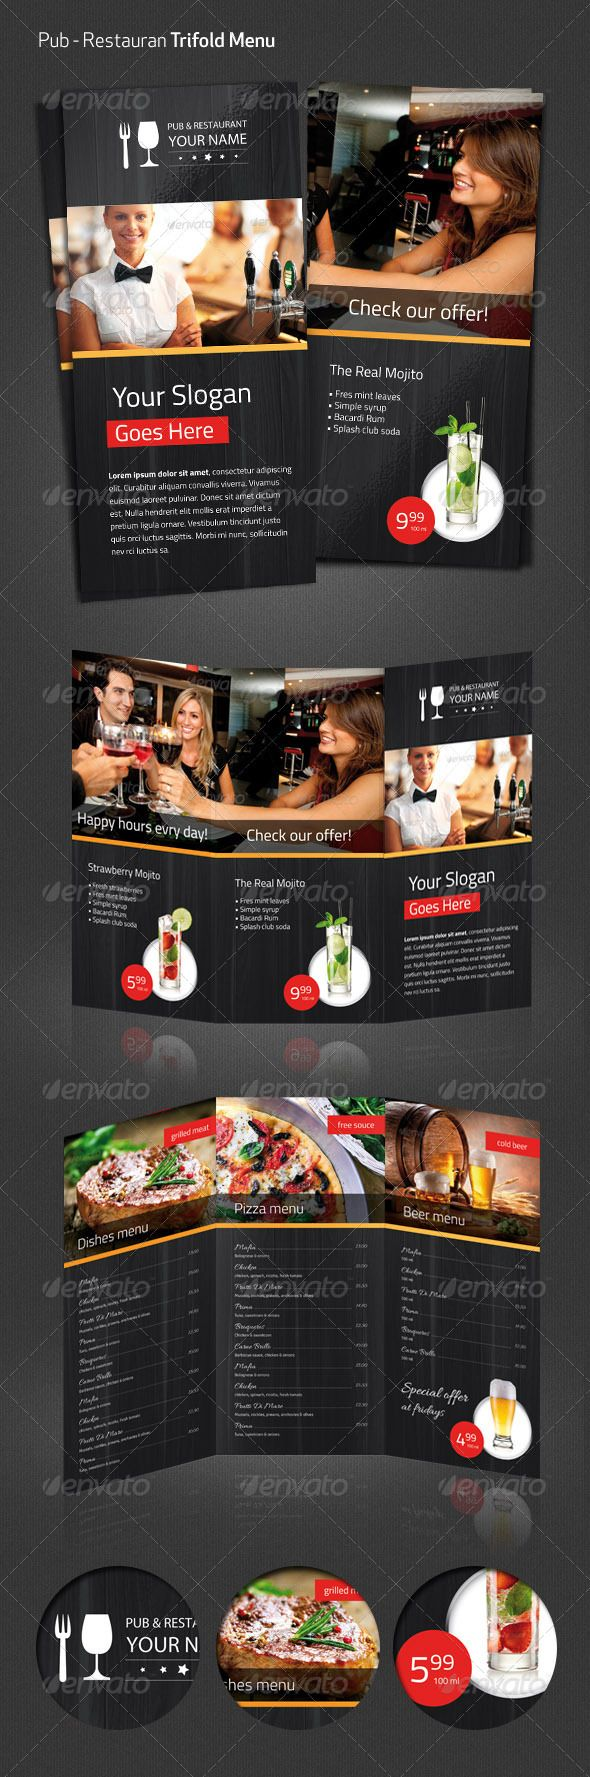 Realistic Graphic DOWNLOAD (.ai, .psd) :: http://realistic-graphics.ovh/pinterest-itmid-1005313030i.html ... Pub Restaurant Menu Flyer ...  beer, dinner, dishes, drinks, elegant, exclusive, flyer, food, grill, menu, pizza, pub, restaurant, texture, trifold, wood  ... Realistic Photo Graphic Print Obejct Business Web Elements Illustration Design Templates ... DOWNLOAD :: http://realistic-graphics.ovh/pinterest-itmid-1005313030i.html